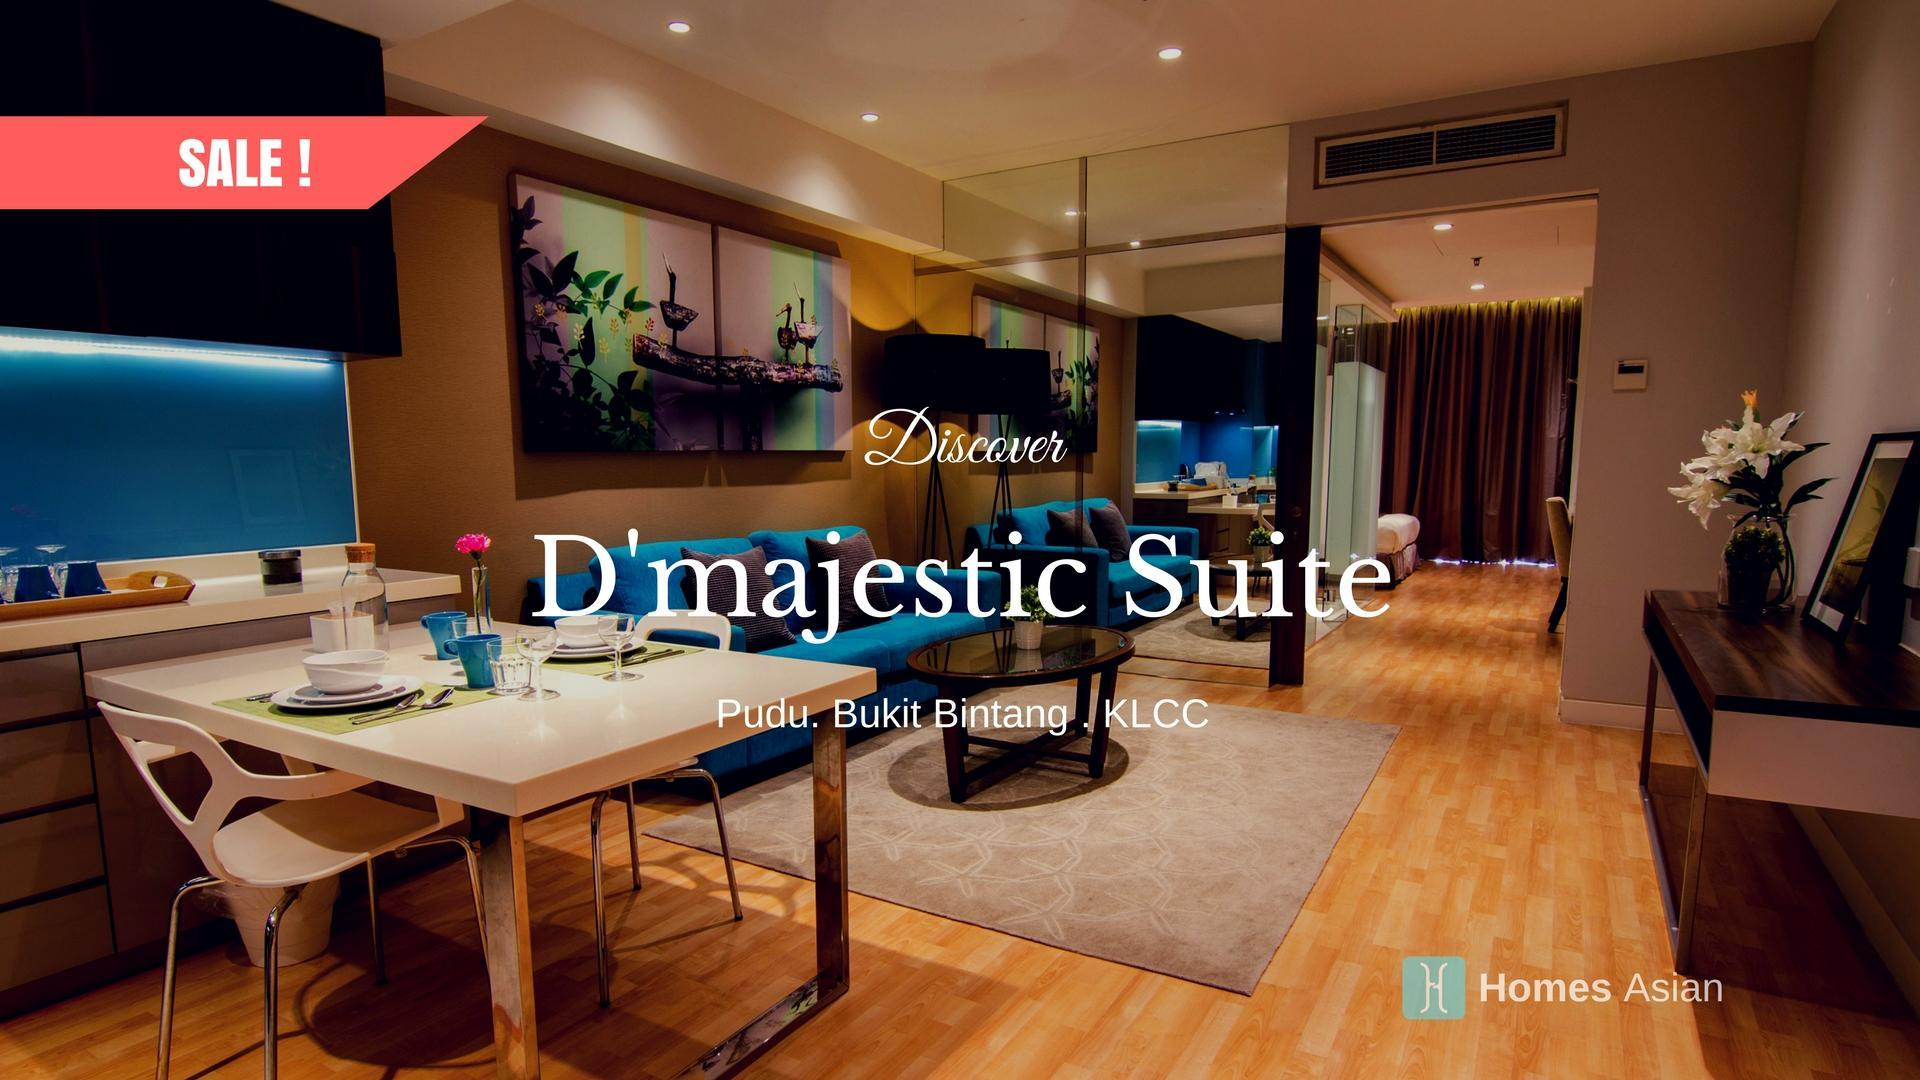 (D71) D'majestic by Homes Asian